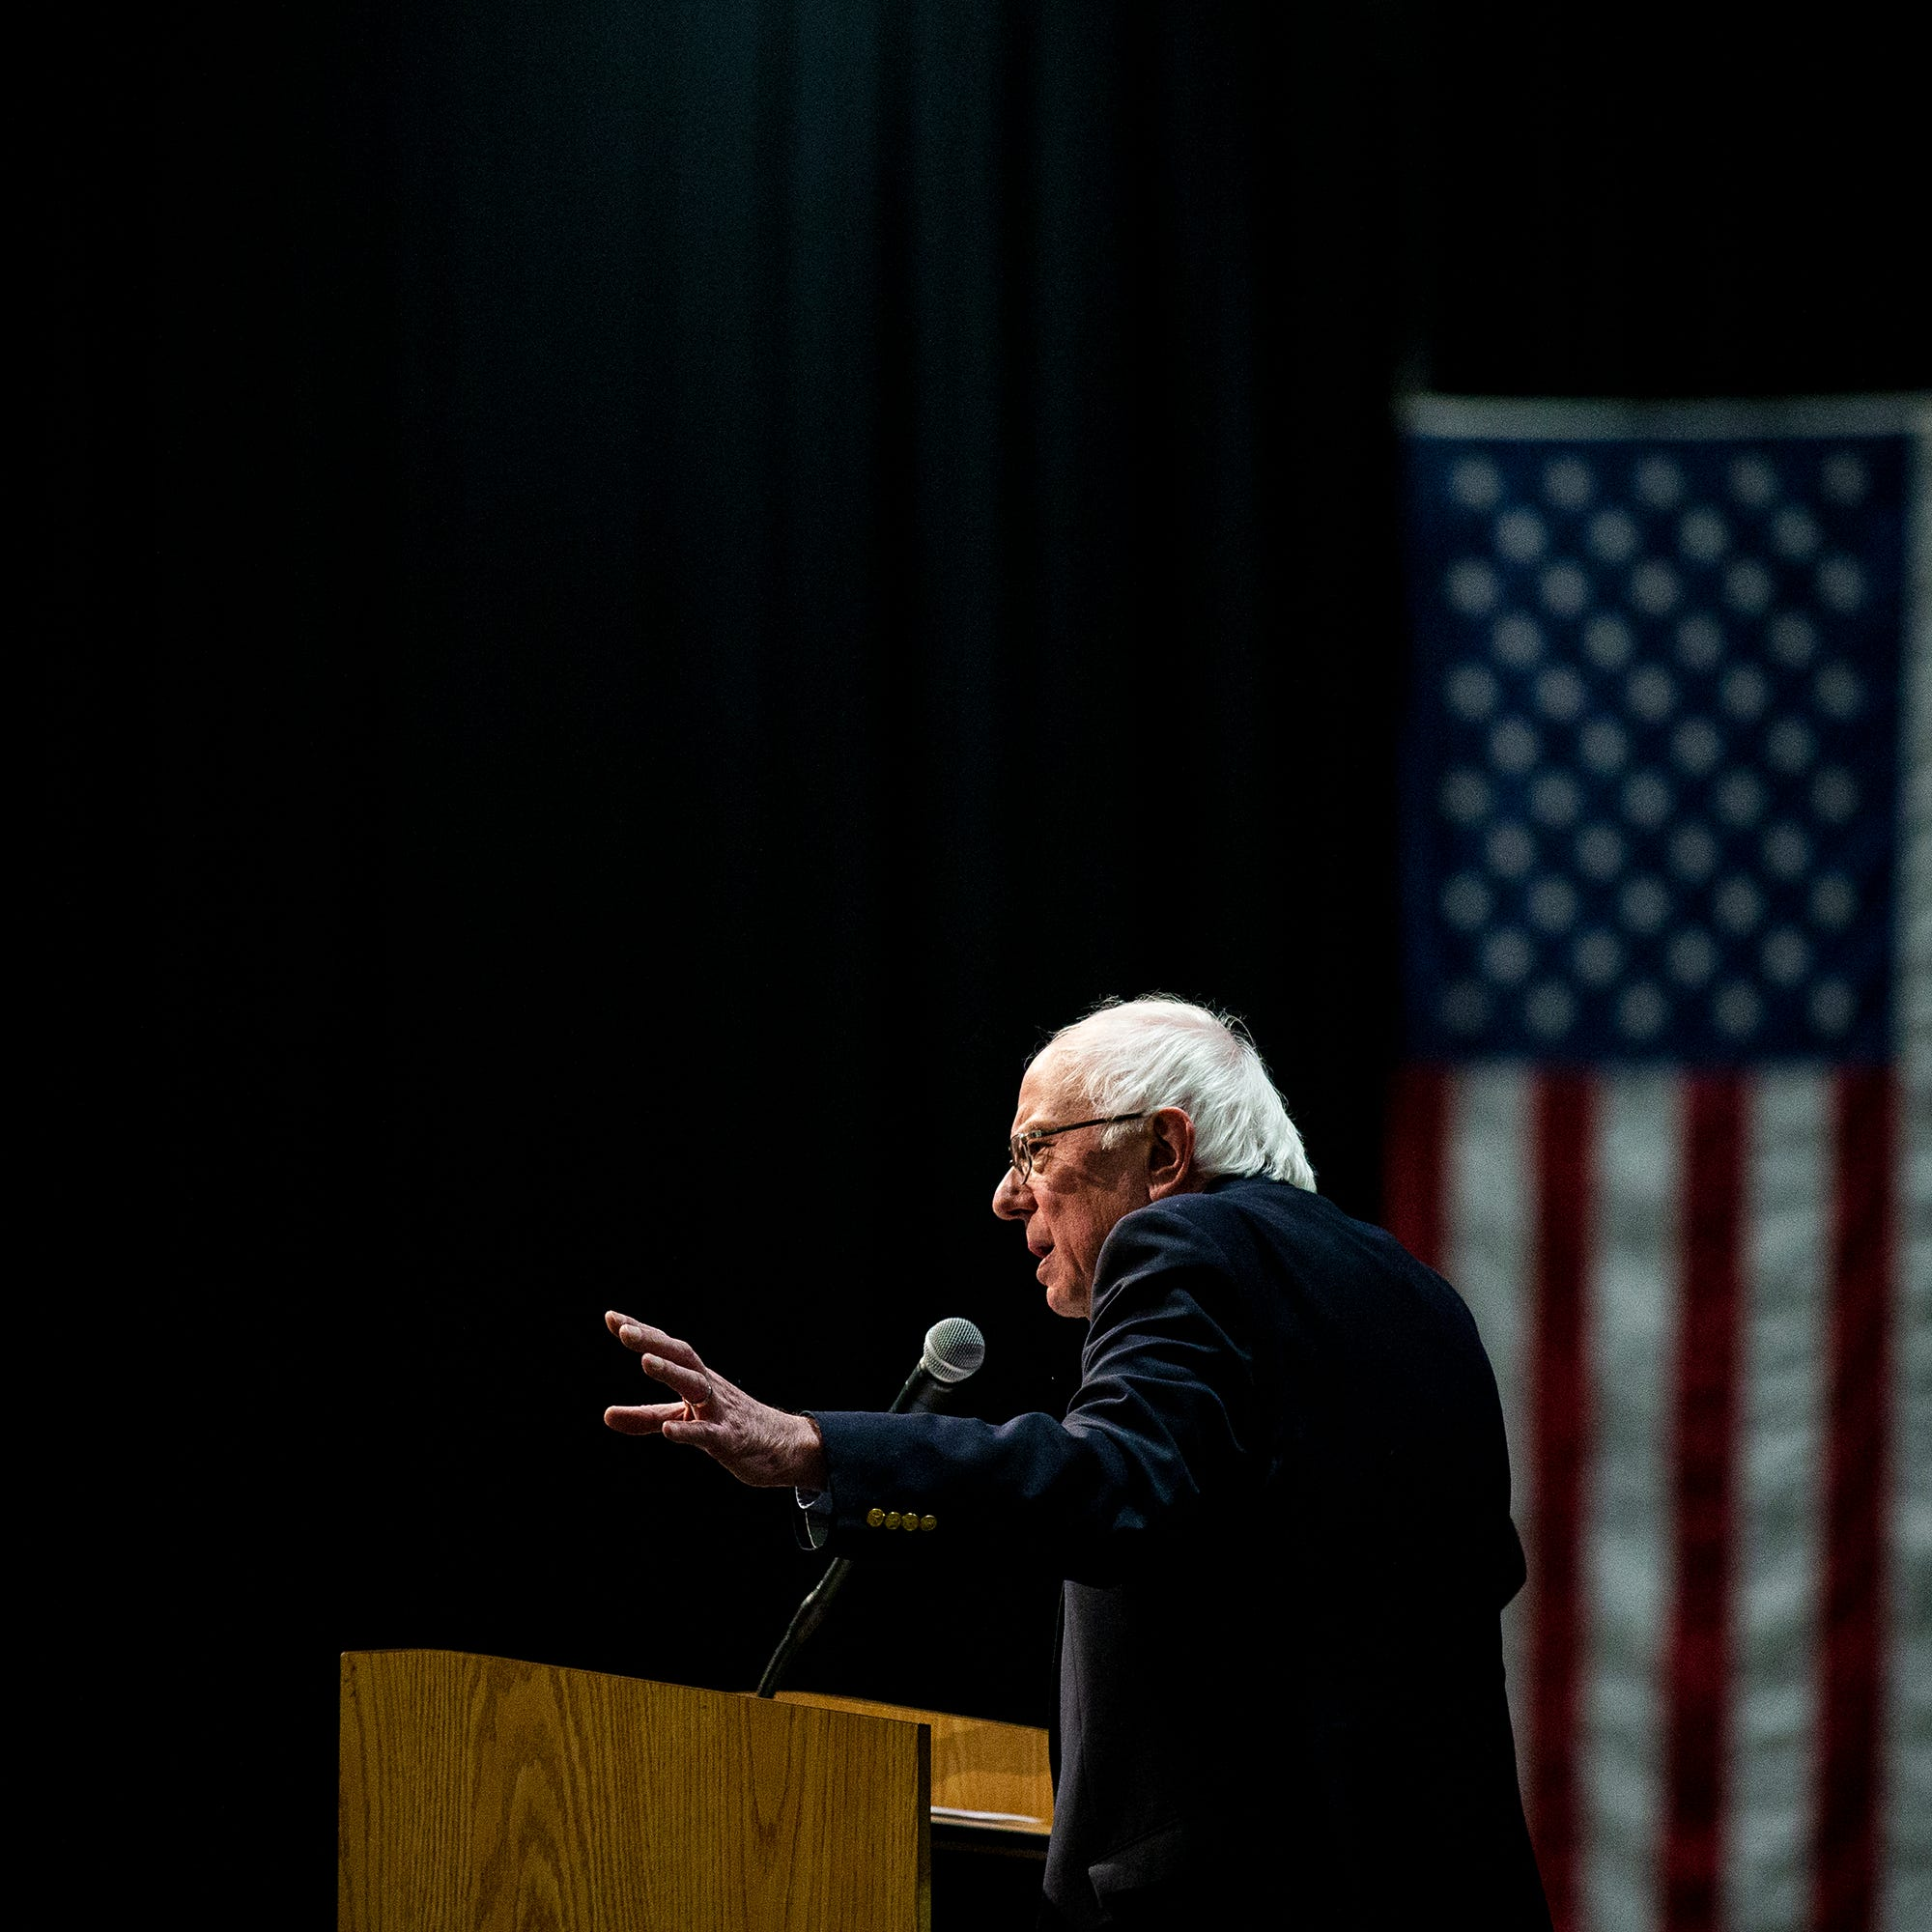 Iowa caucuses 2020: Frontrunner Bernie Sanders brings his 'political revolution' back to Iowa